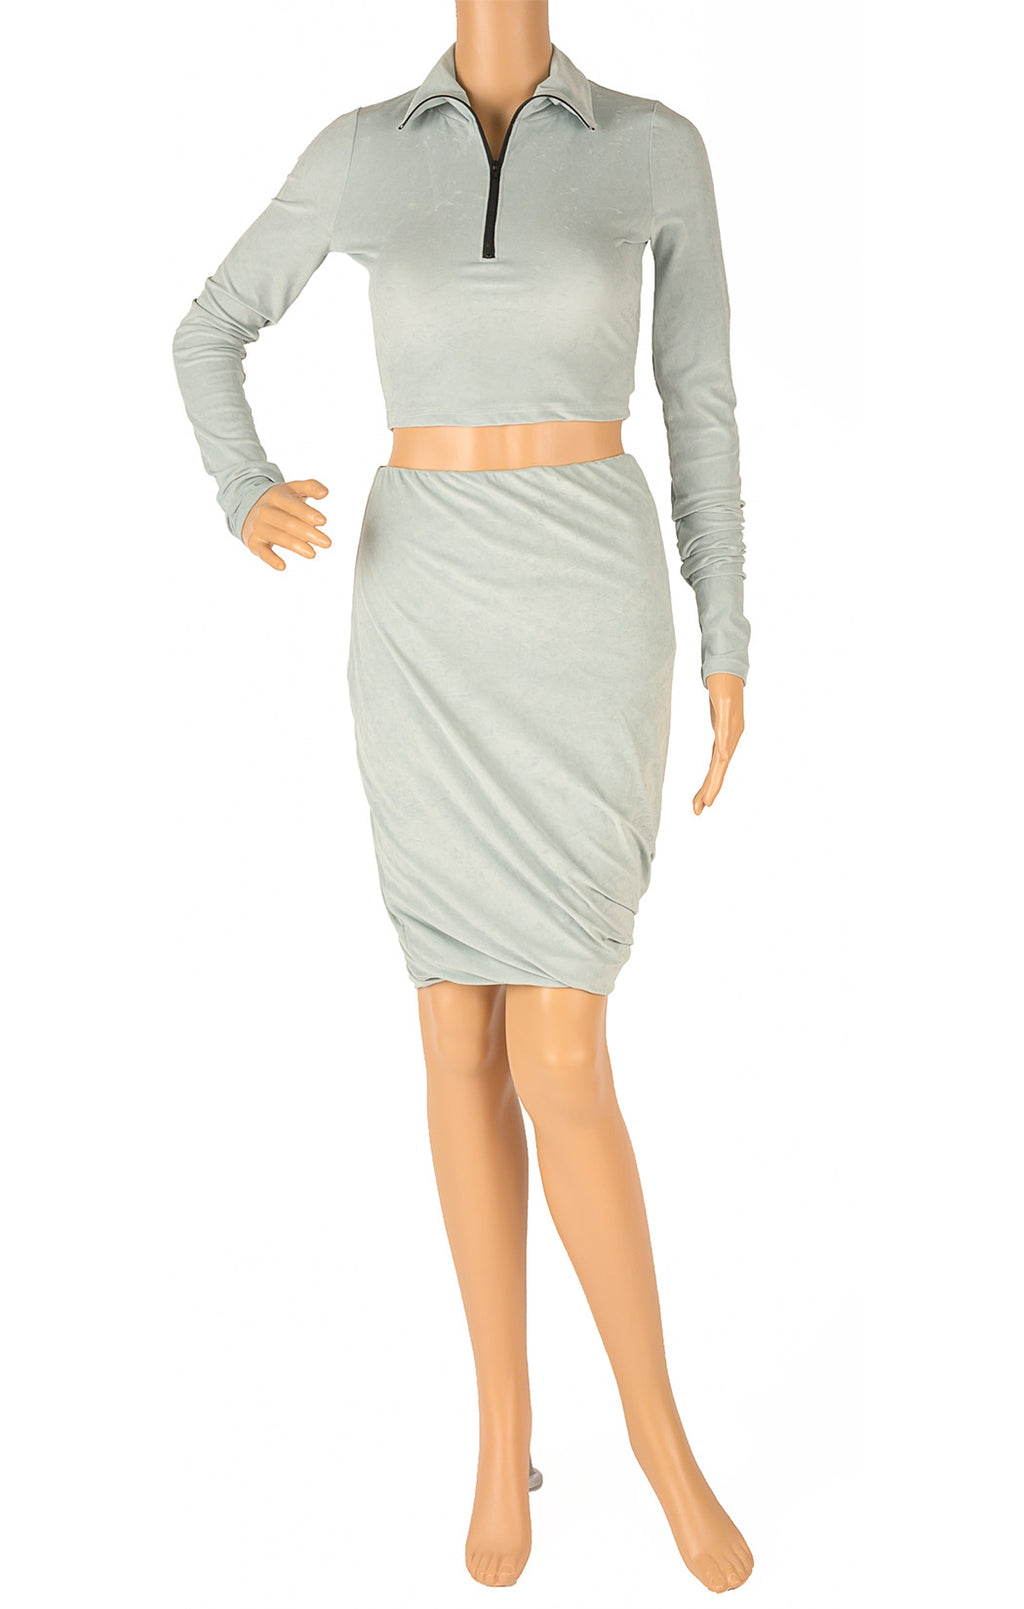 Front view of JOHN ELLIOTT  Matching skirt and top Size: Small